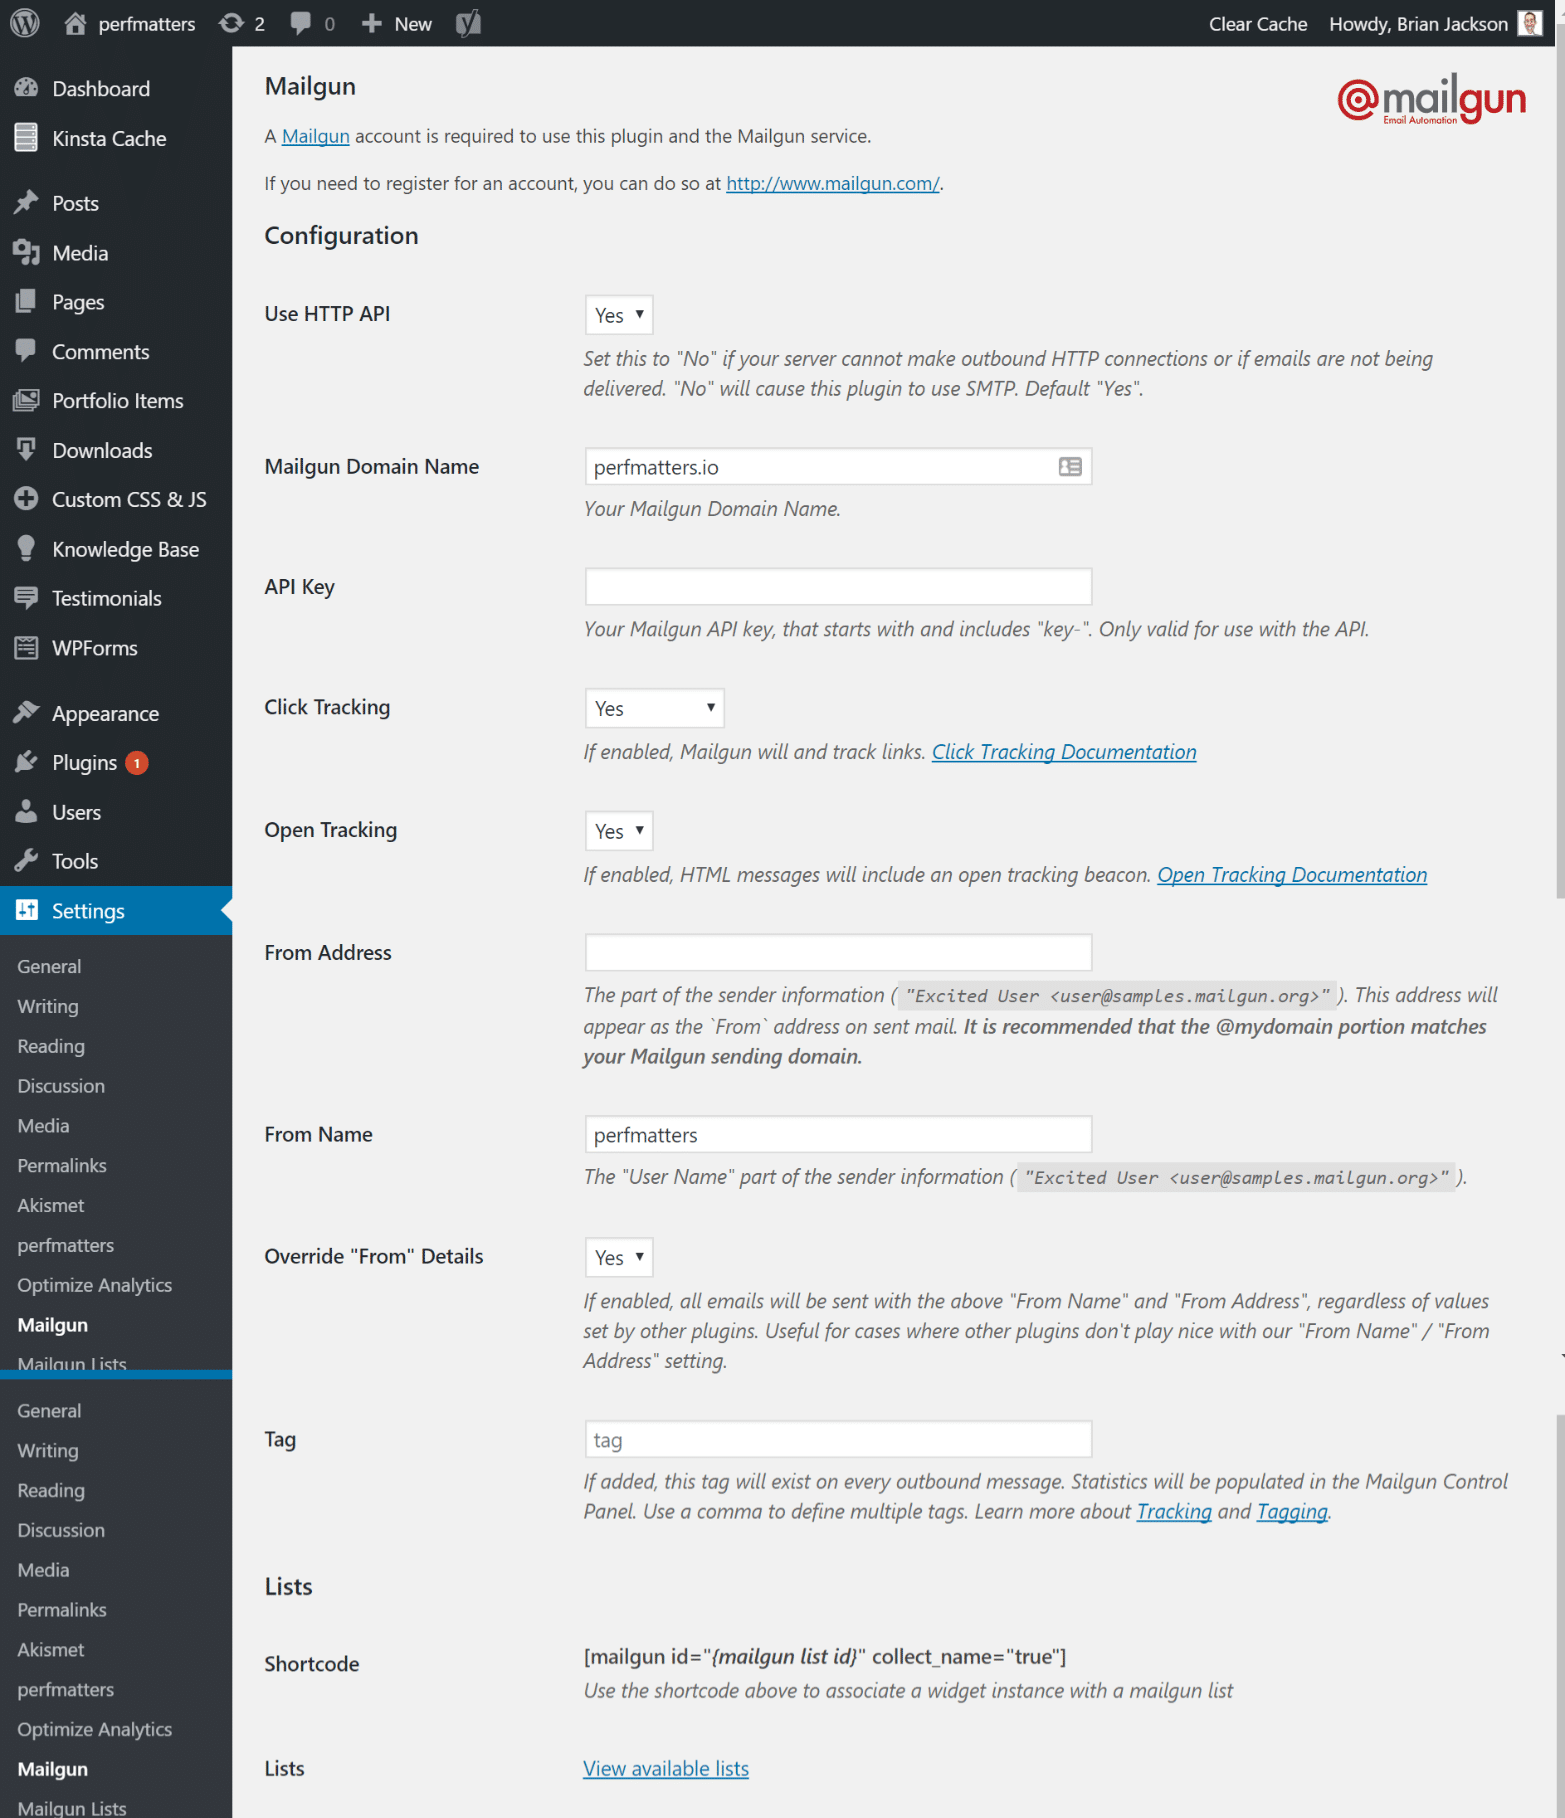 Mailgun plugin settings